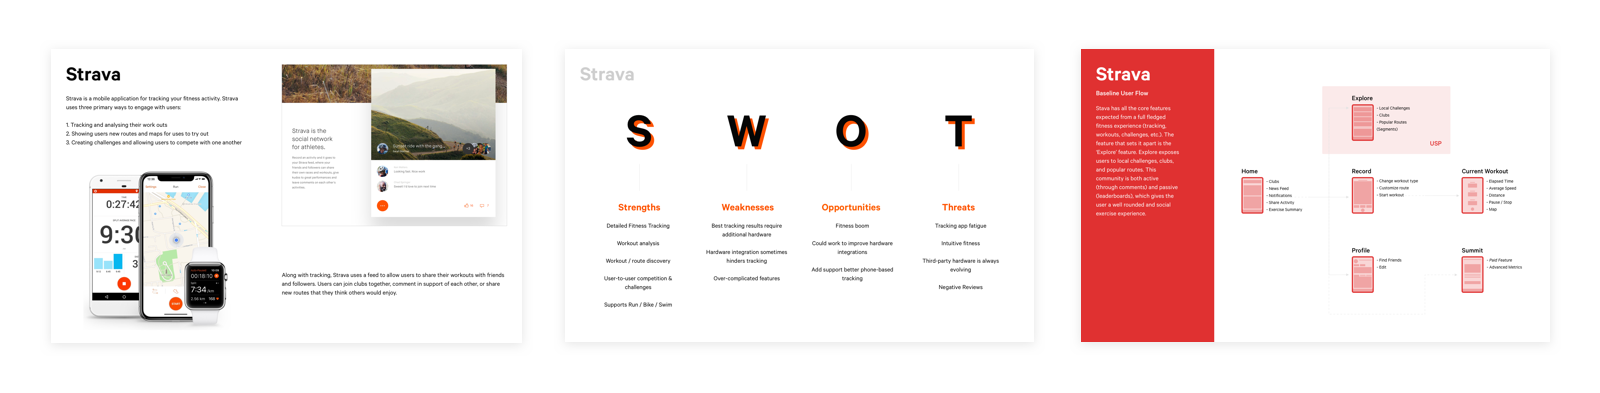 Presentation pages showcasing research outcomes from investigating Stava